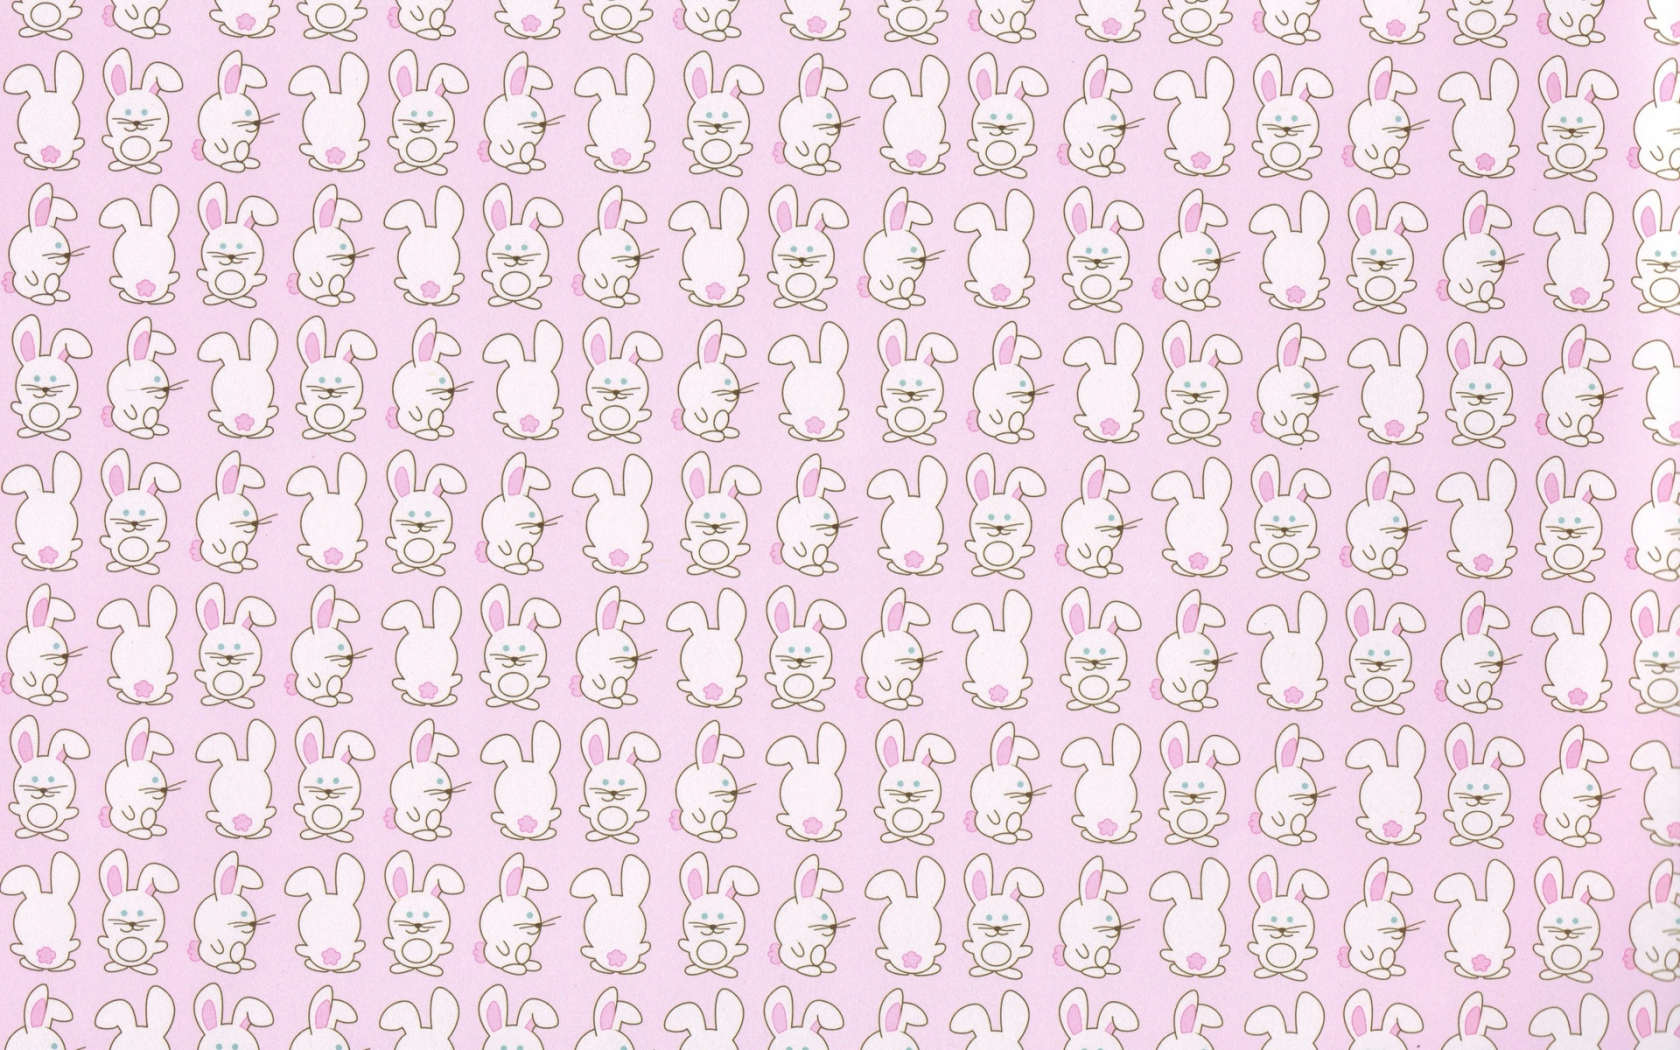 Free Download Bunny Pattern Rabbit Cute Children Wallpaper